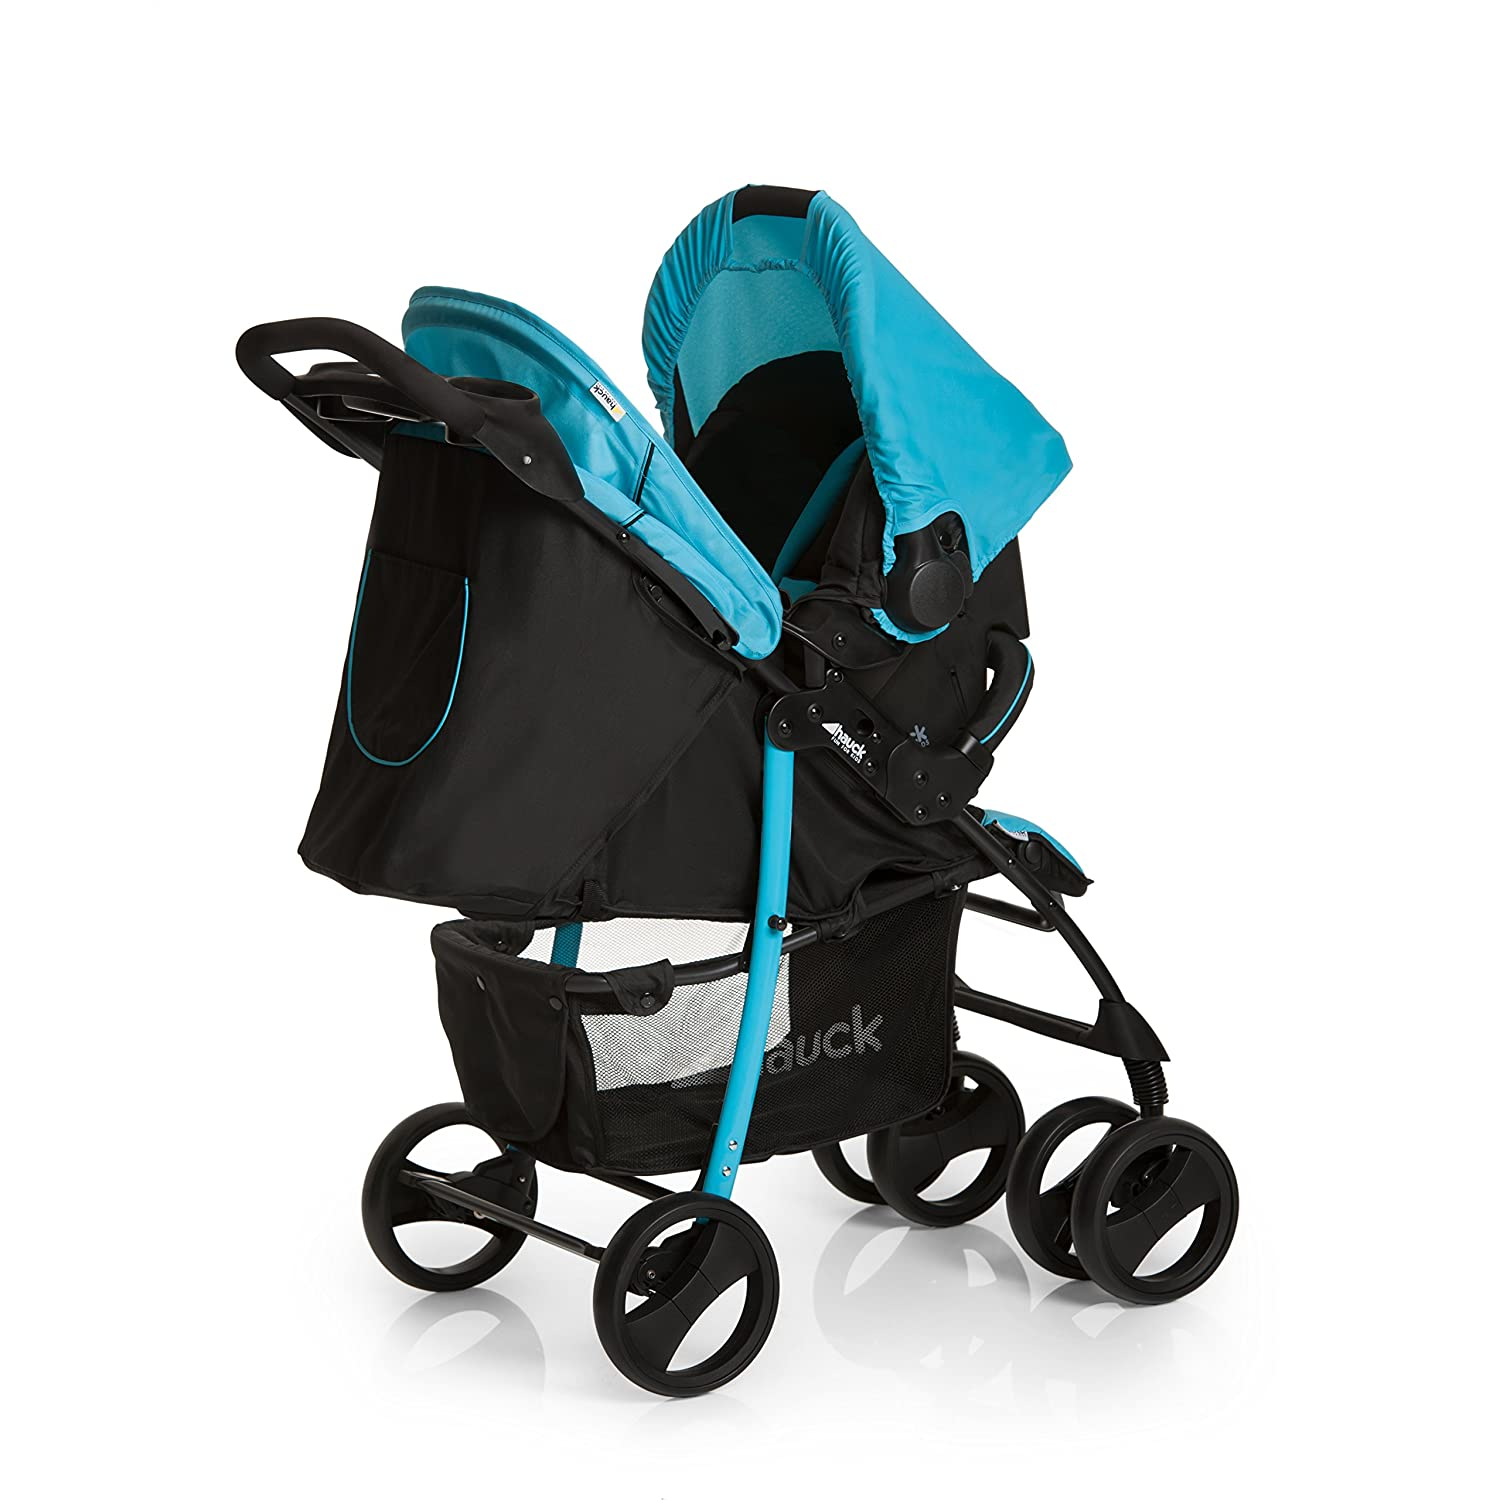 Hauck Shopper Shop-n-Drive Set Lightweight Travel System, from Birth, Grey (Car Seat, Foot Muff, Change Bag and Raincover) H-15276